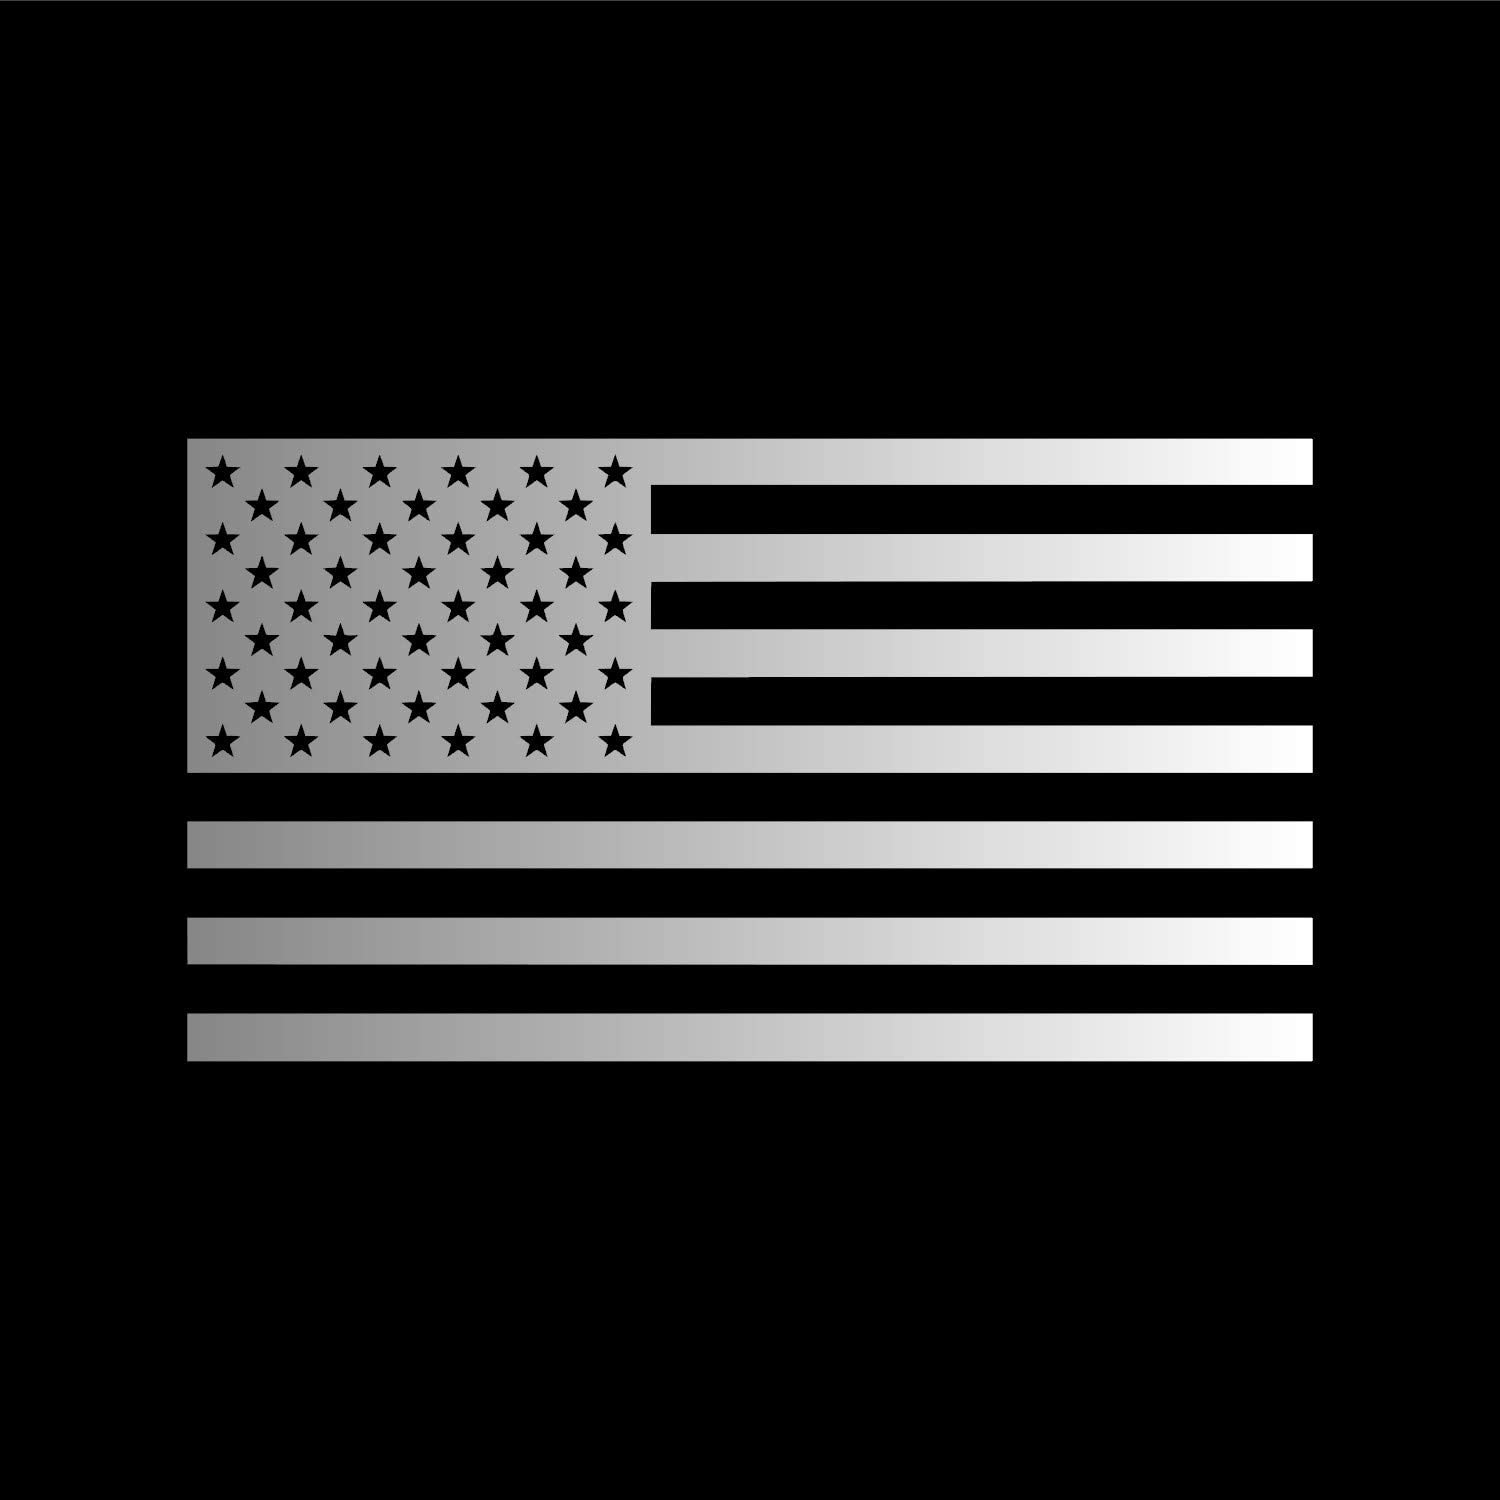 American US Flag [Pick Color/Size] Vinyl Decal Sticker for Laptop/Car/Truck/Jeep/Window/Bumper (5in x 2.8in, Metallic Silver)